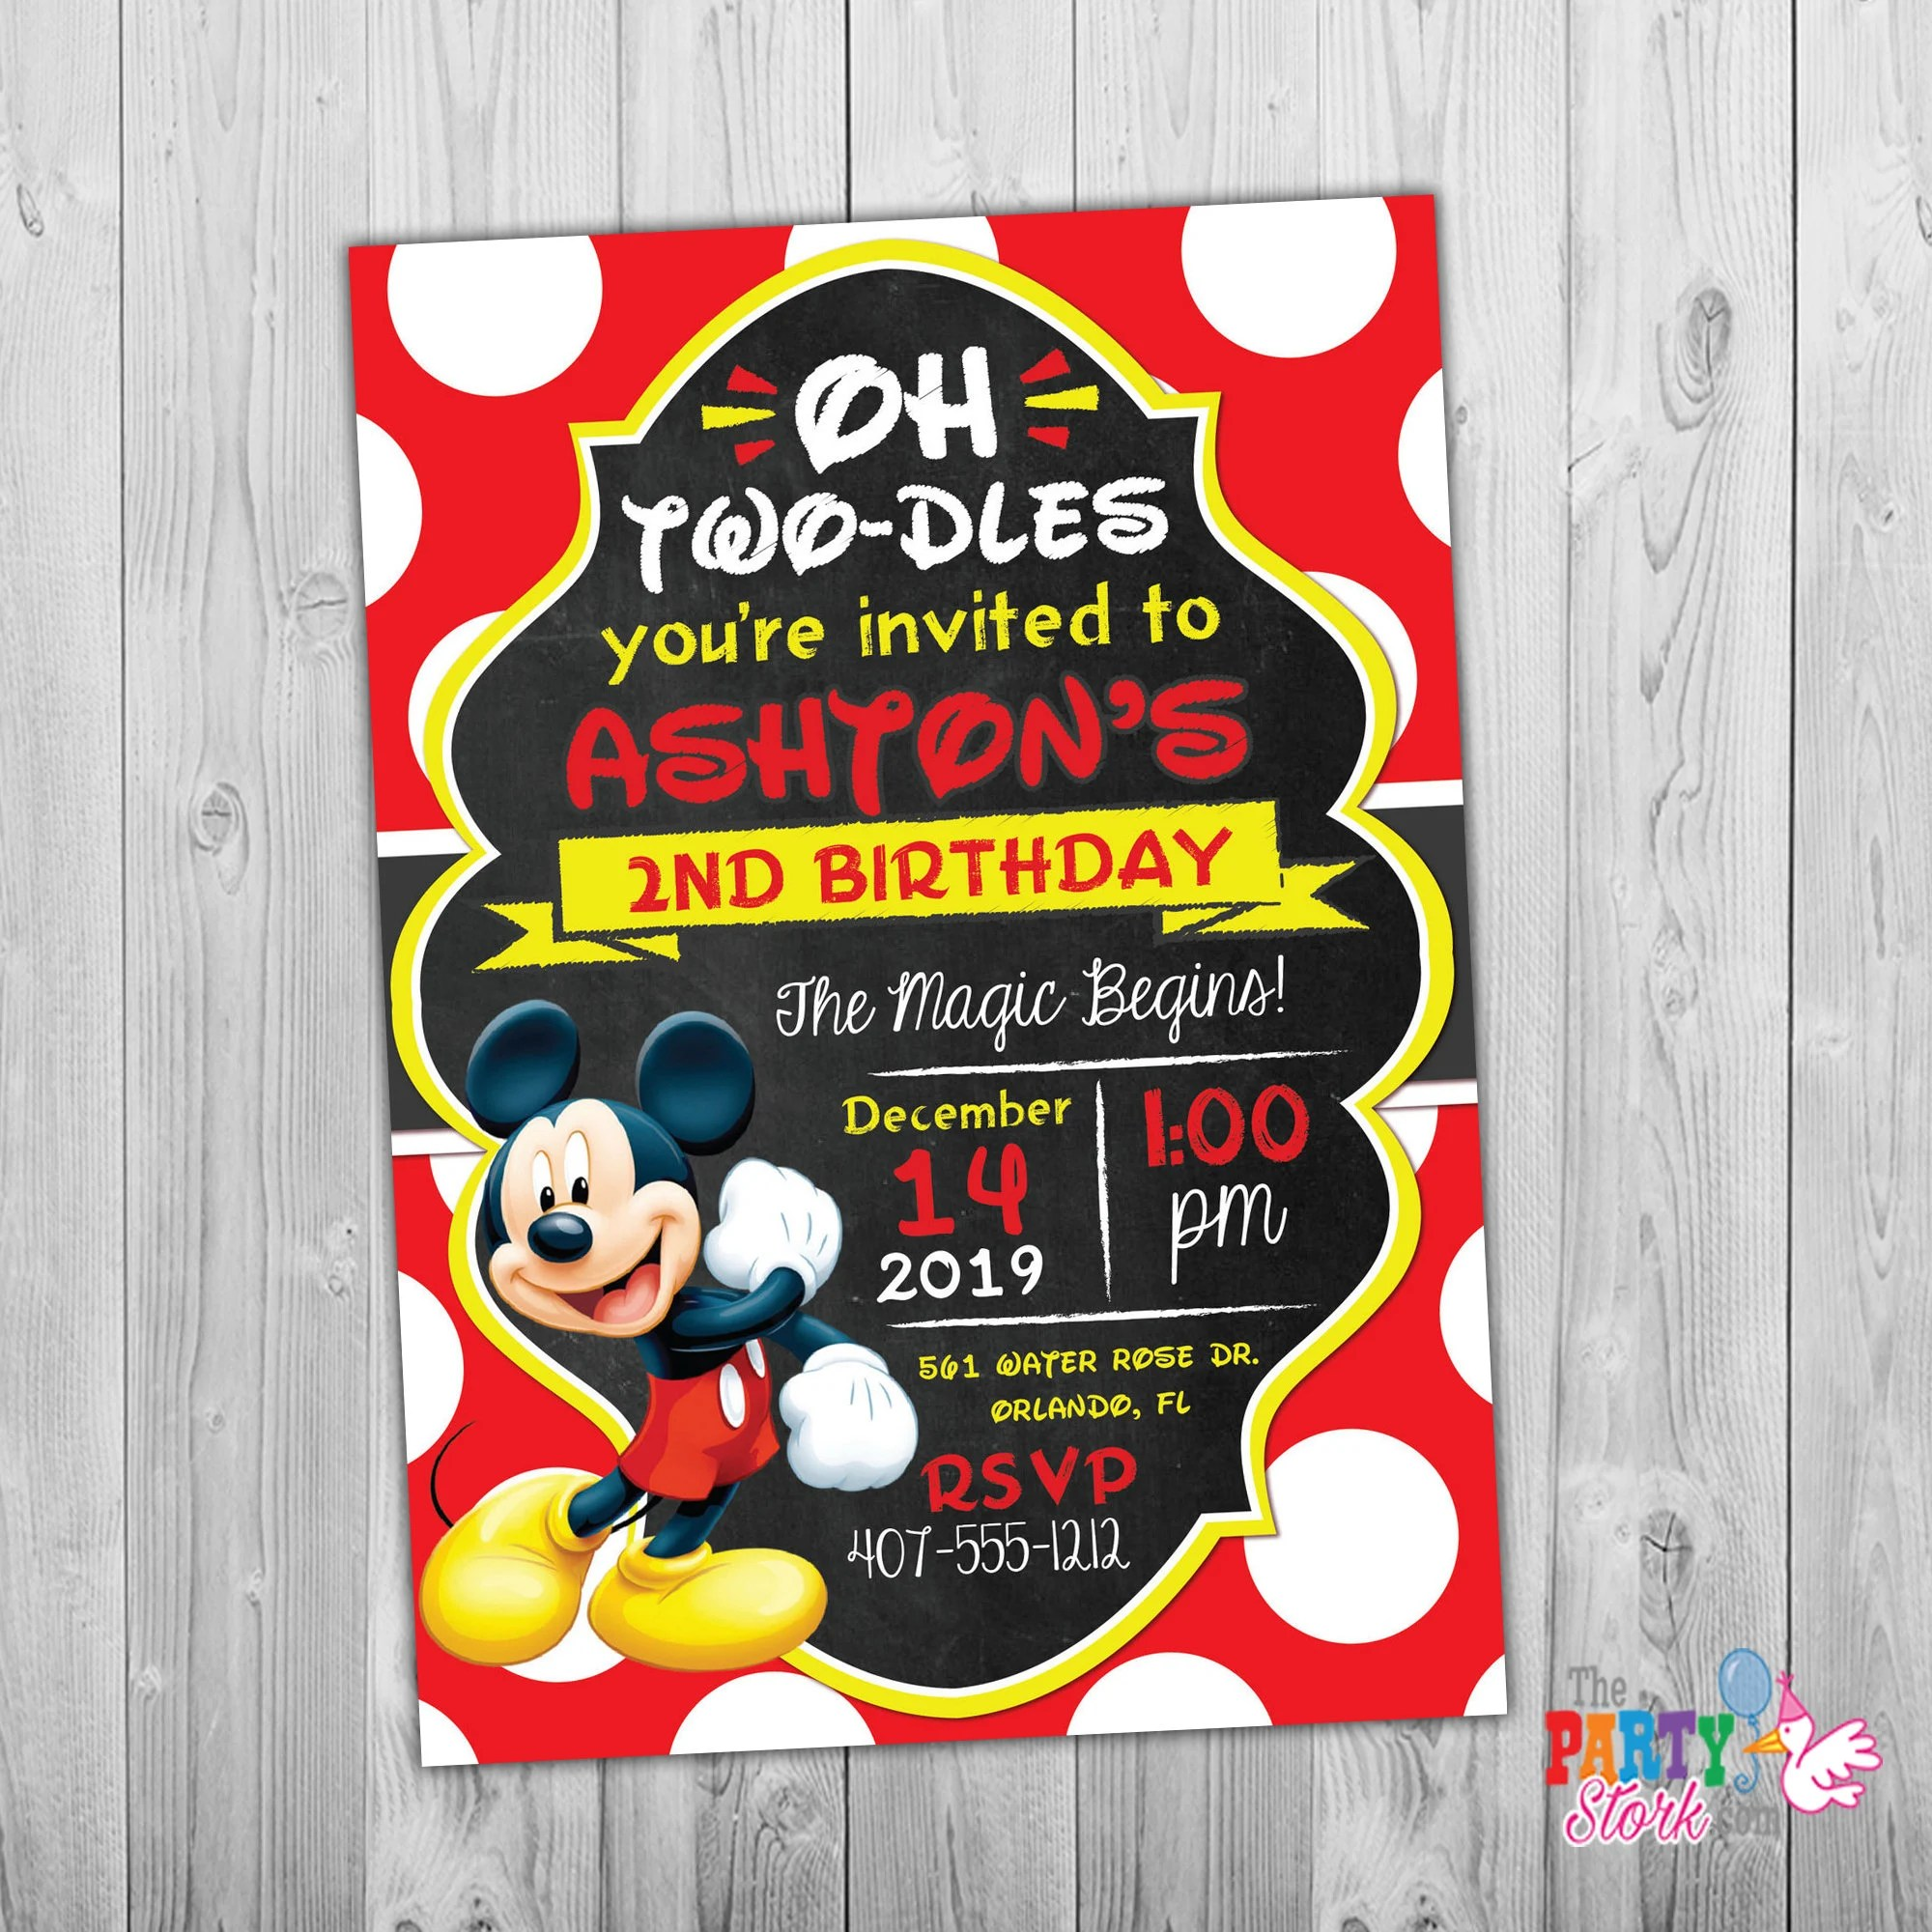 oh twodles invitation mickey mouse invitation oh twodles birthday mickey mouse birthday mickey invitation red 2nd birthday toodles digital